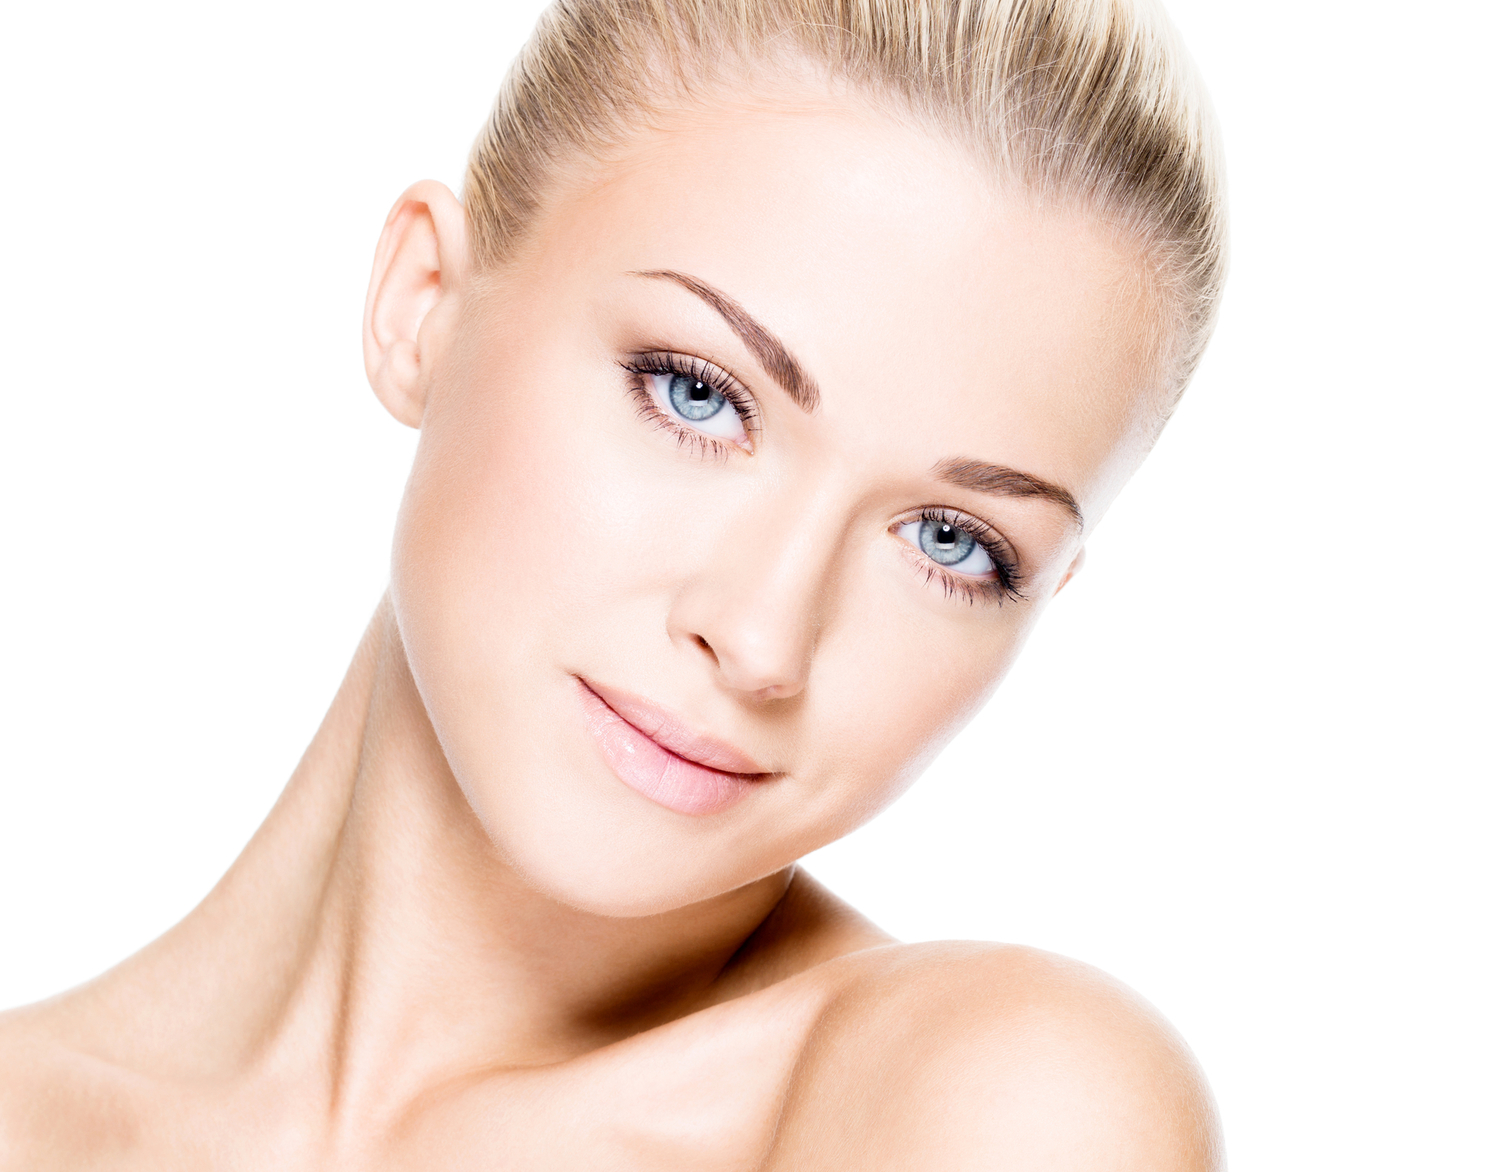 7 Highly Effective Habits For Beautiful Clear Skin My Green Home Blog